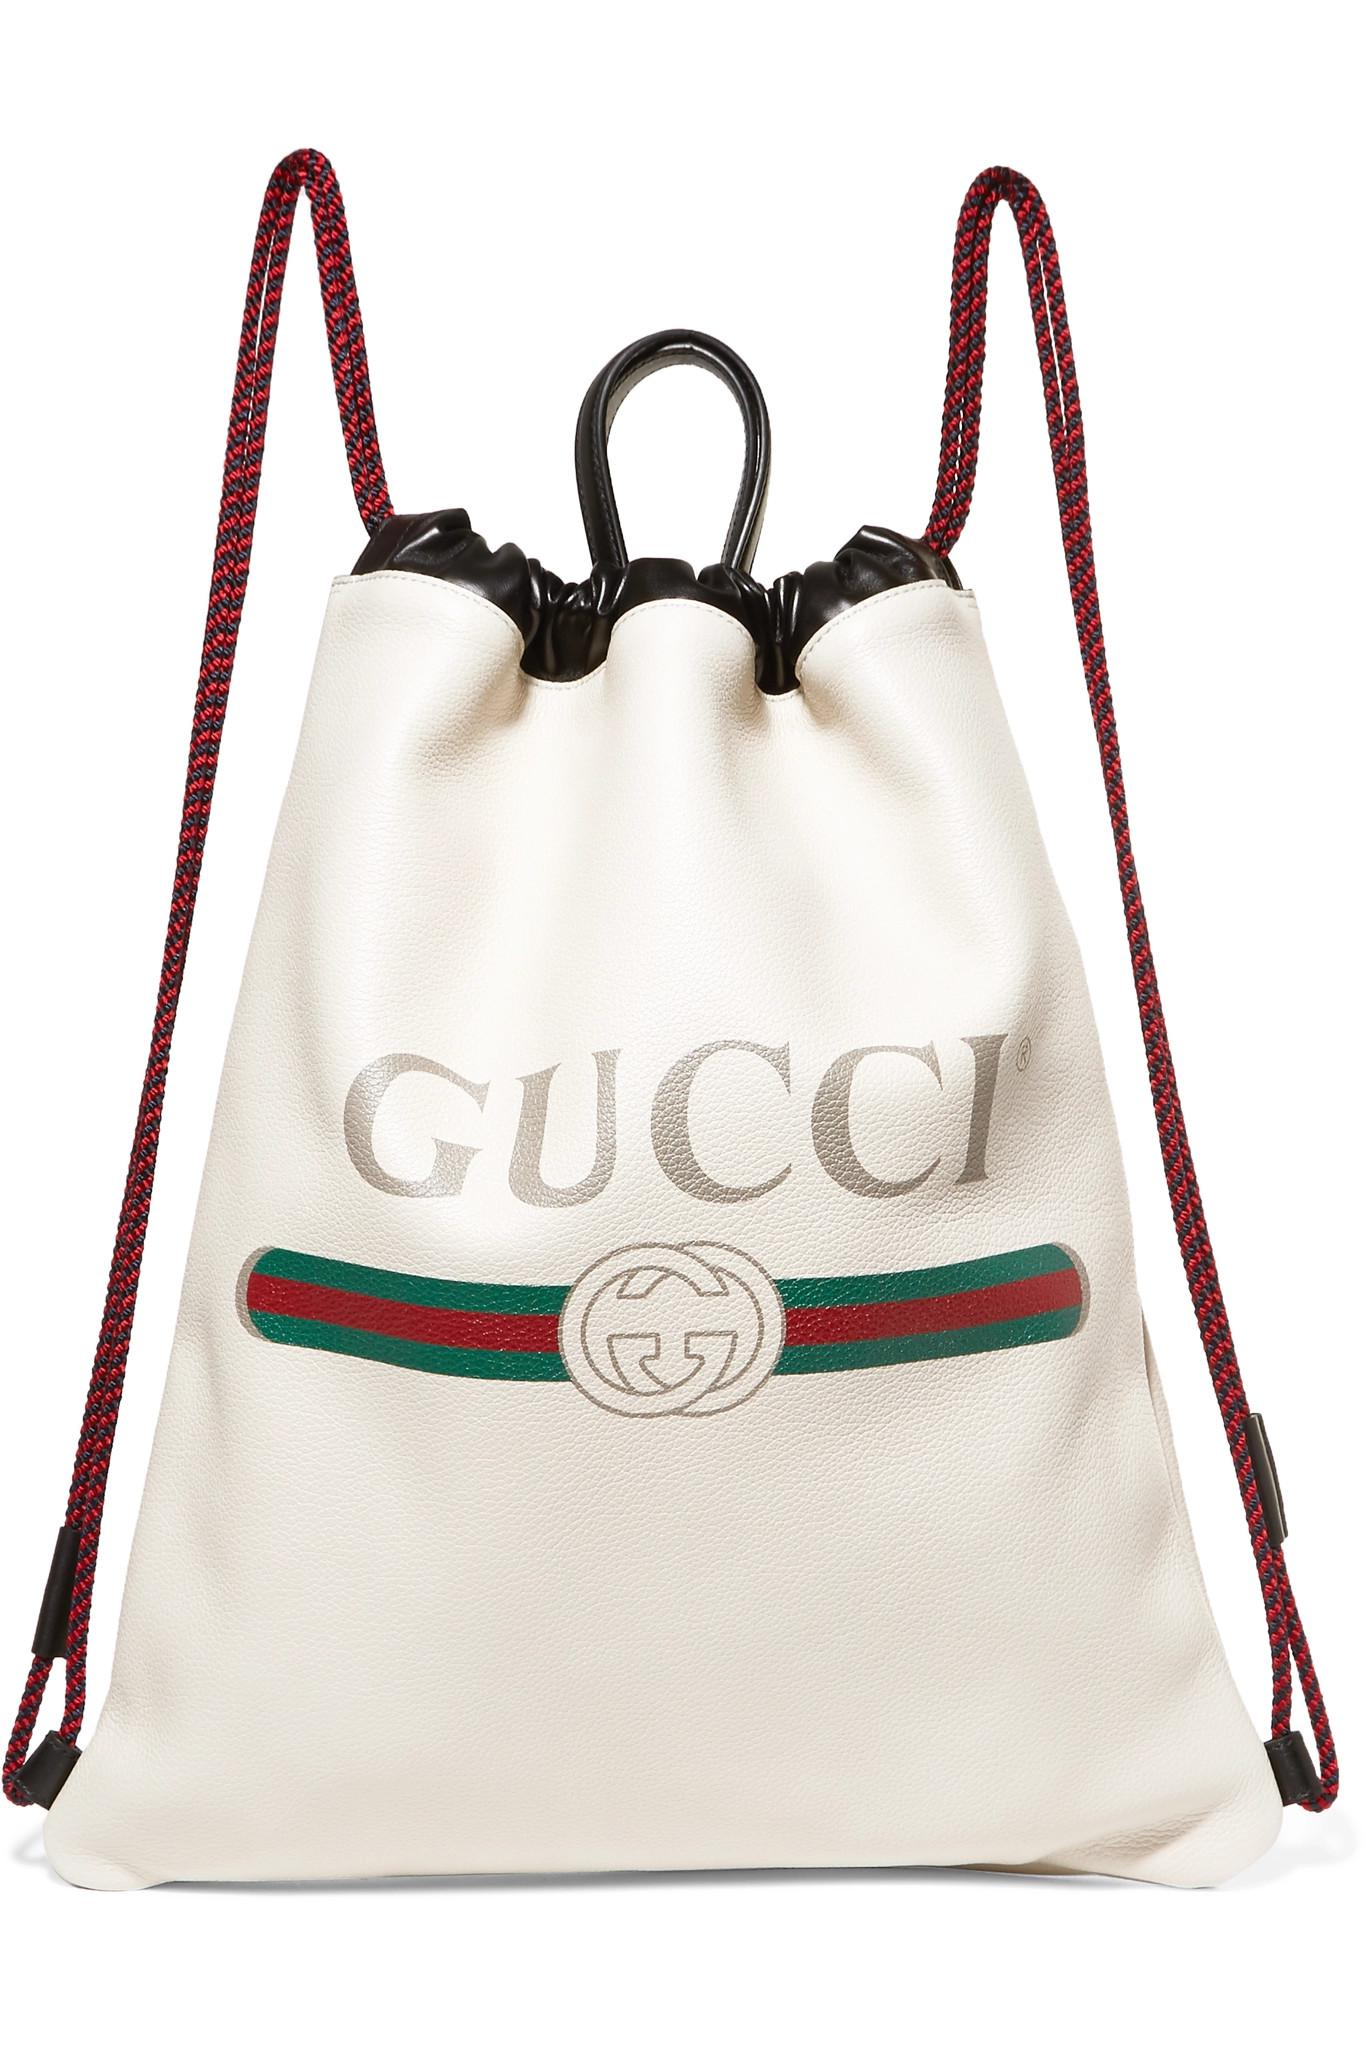 Gucci Printed Textured-leather Backpack - White ggKnM43Kql